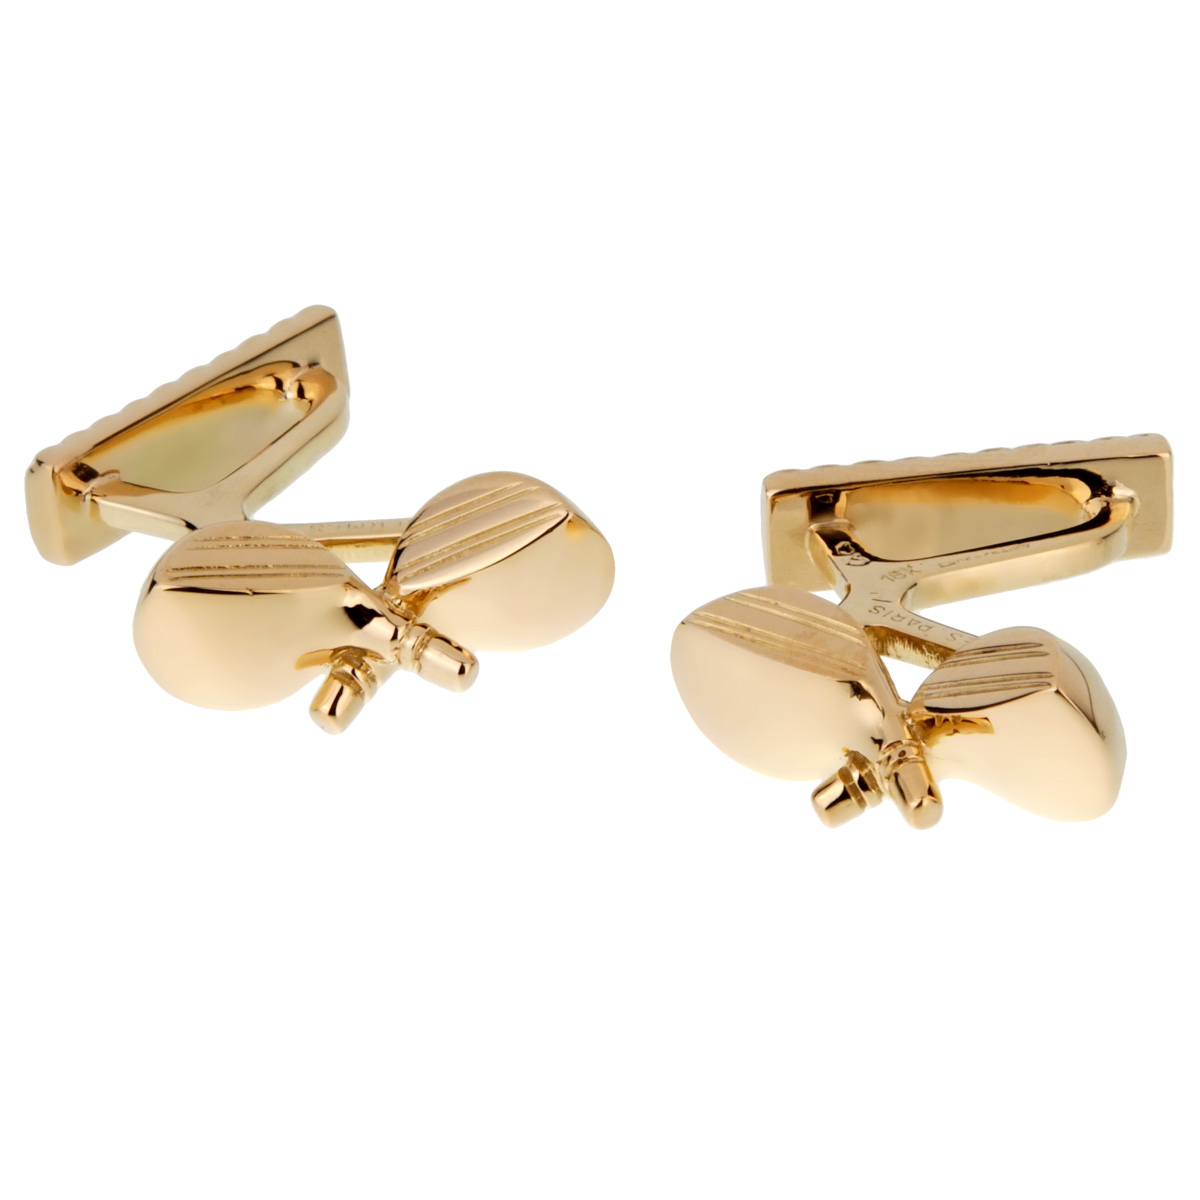 Hermes Yellow Gold Golf Club Cufflinks - Hermes Jewelry